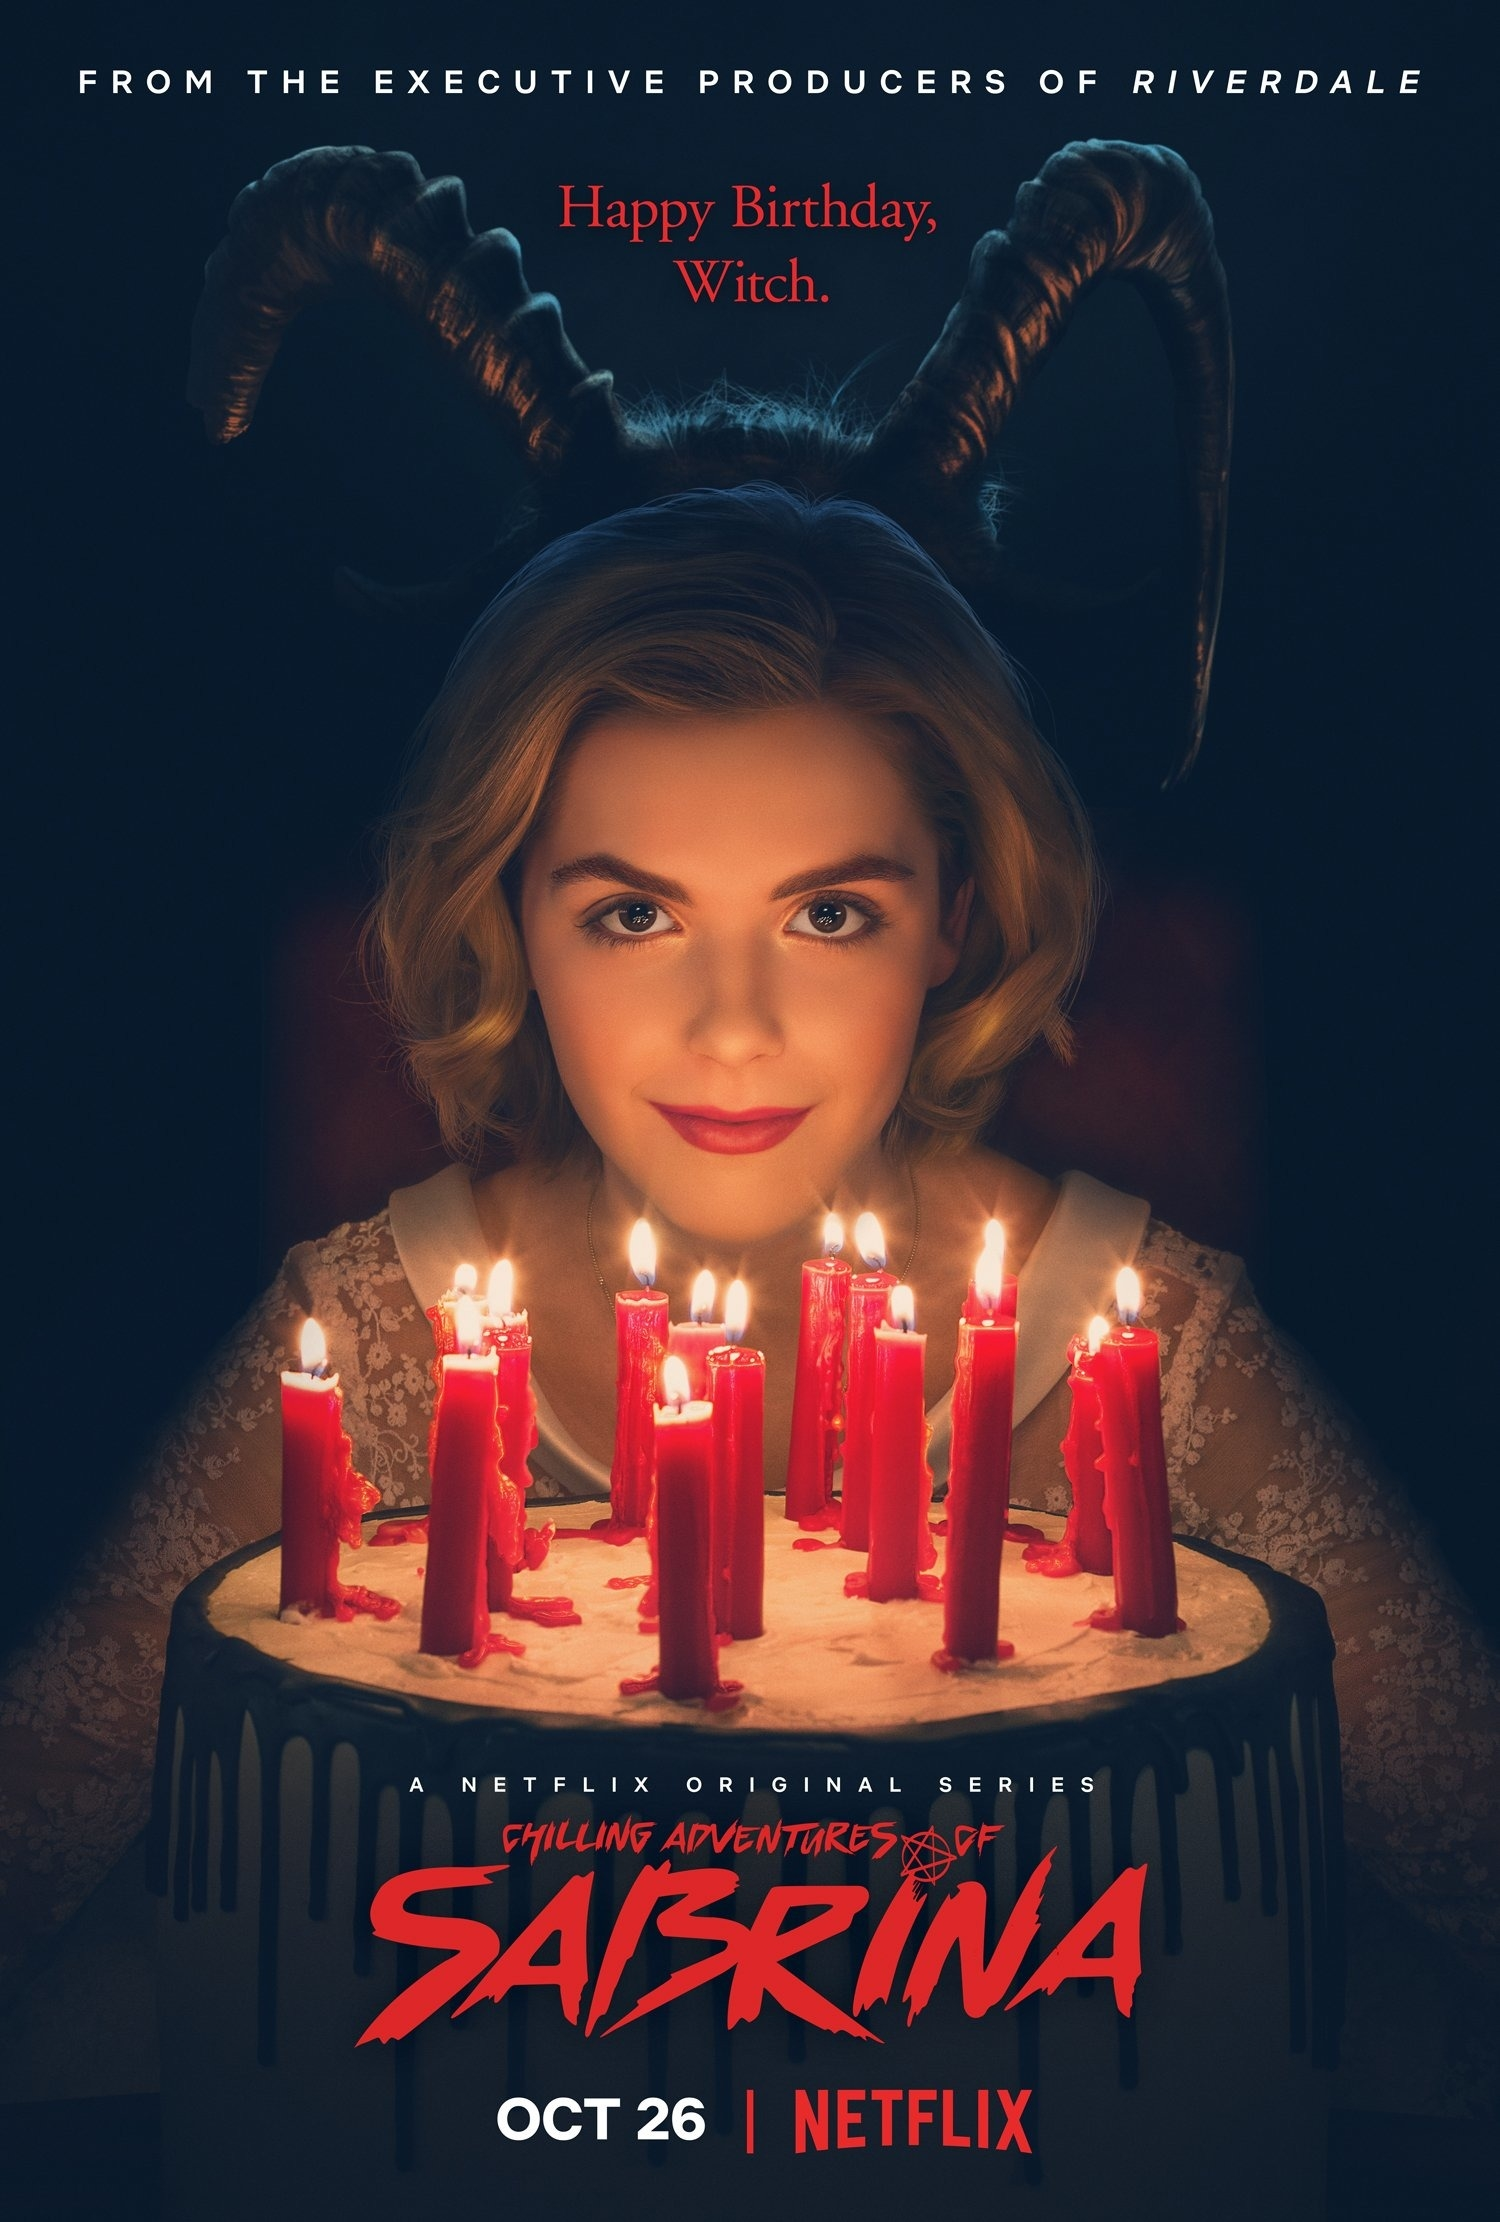 Image result for chilling adventures sabrina poster tumblr